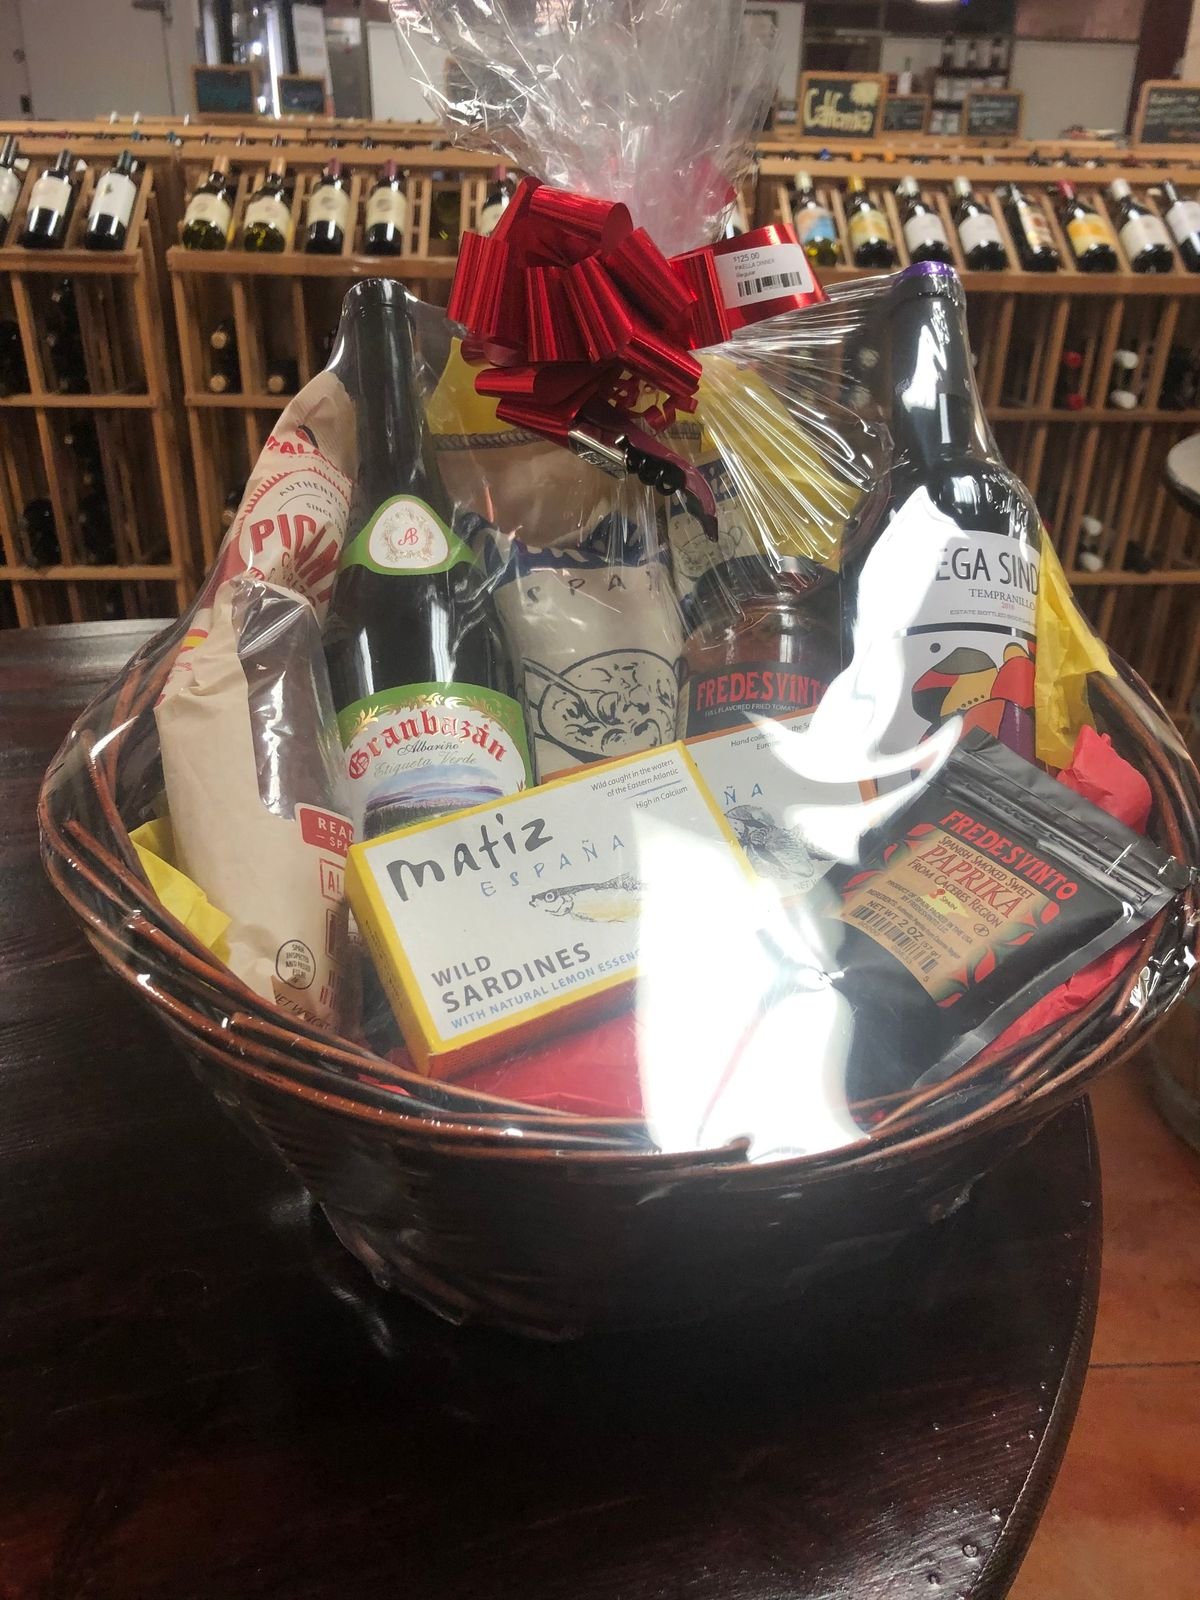 A basket filled with food gifts